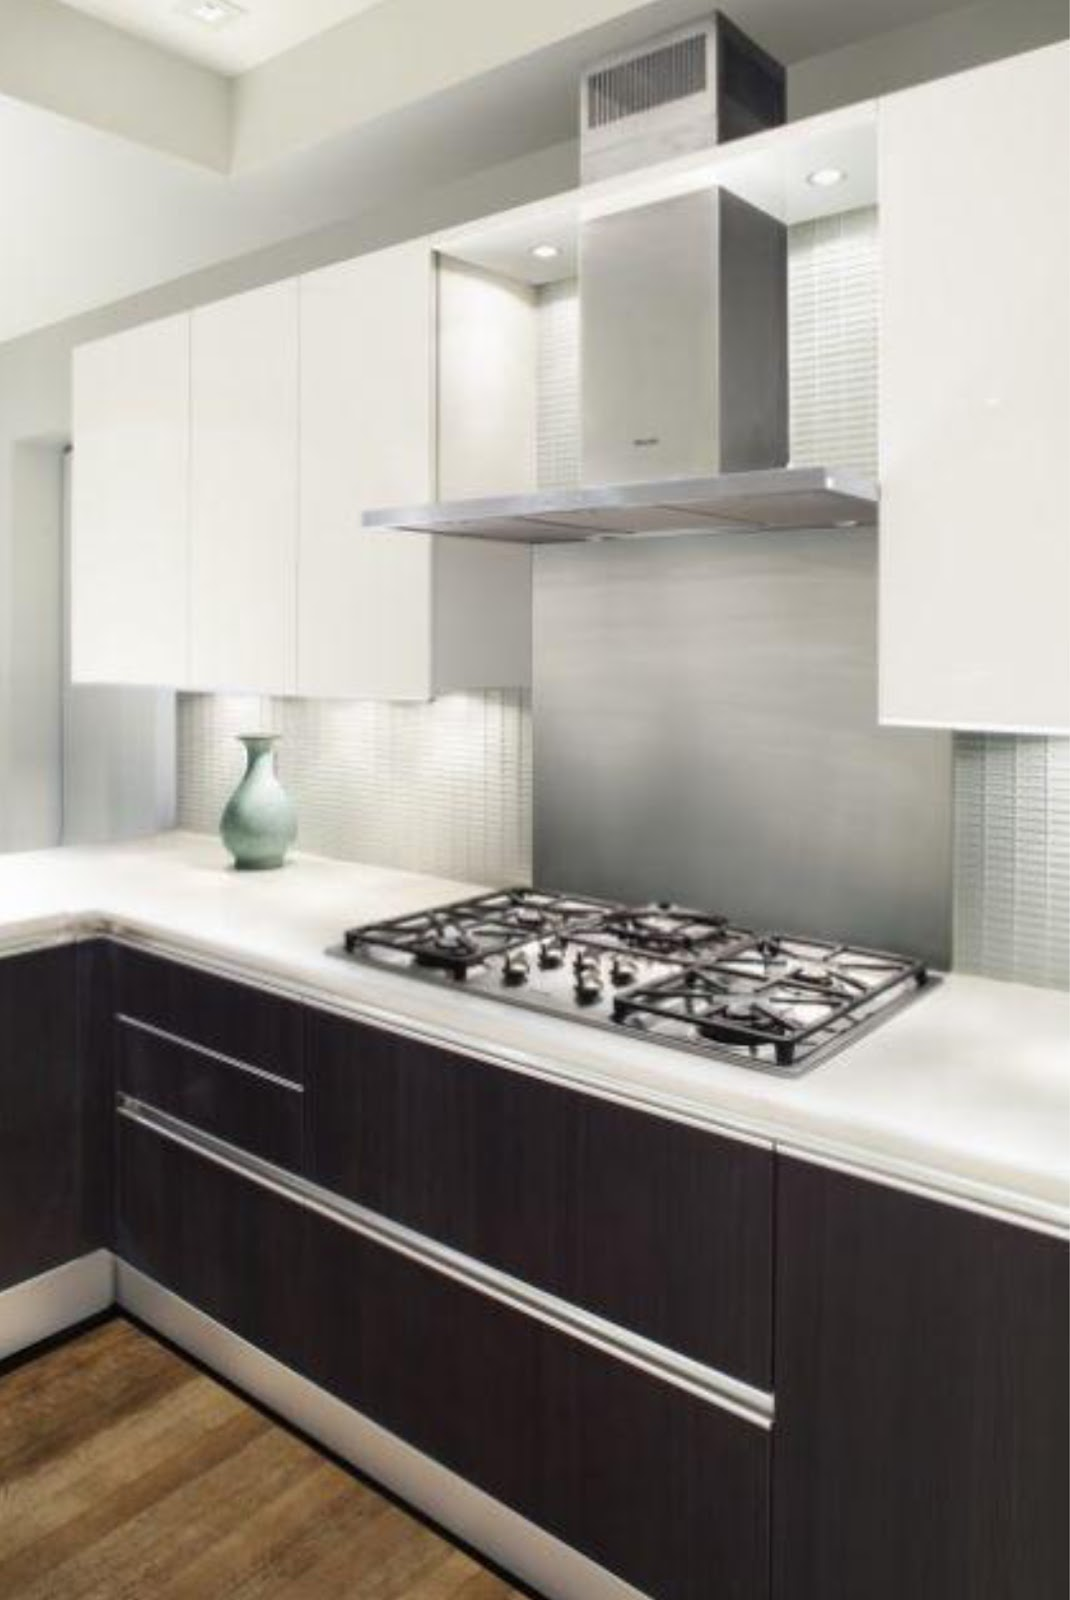 2 Tone Brown Kitchen Cabinets Simplifying Remodeling Two Tone Cabinet Finishes Double